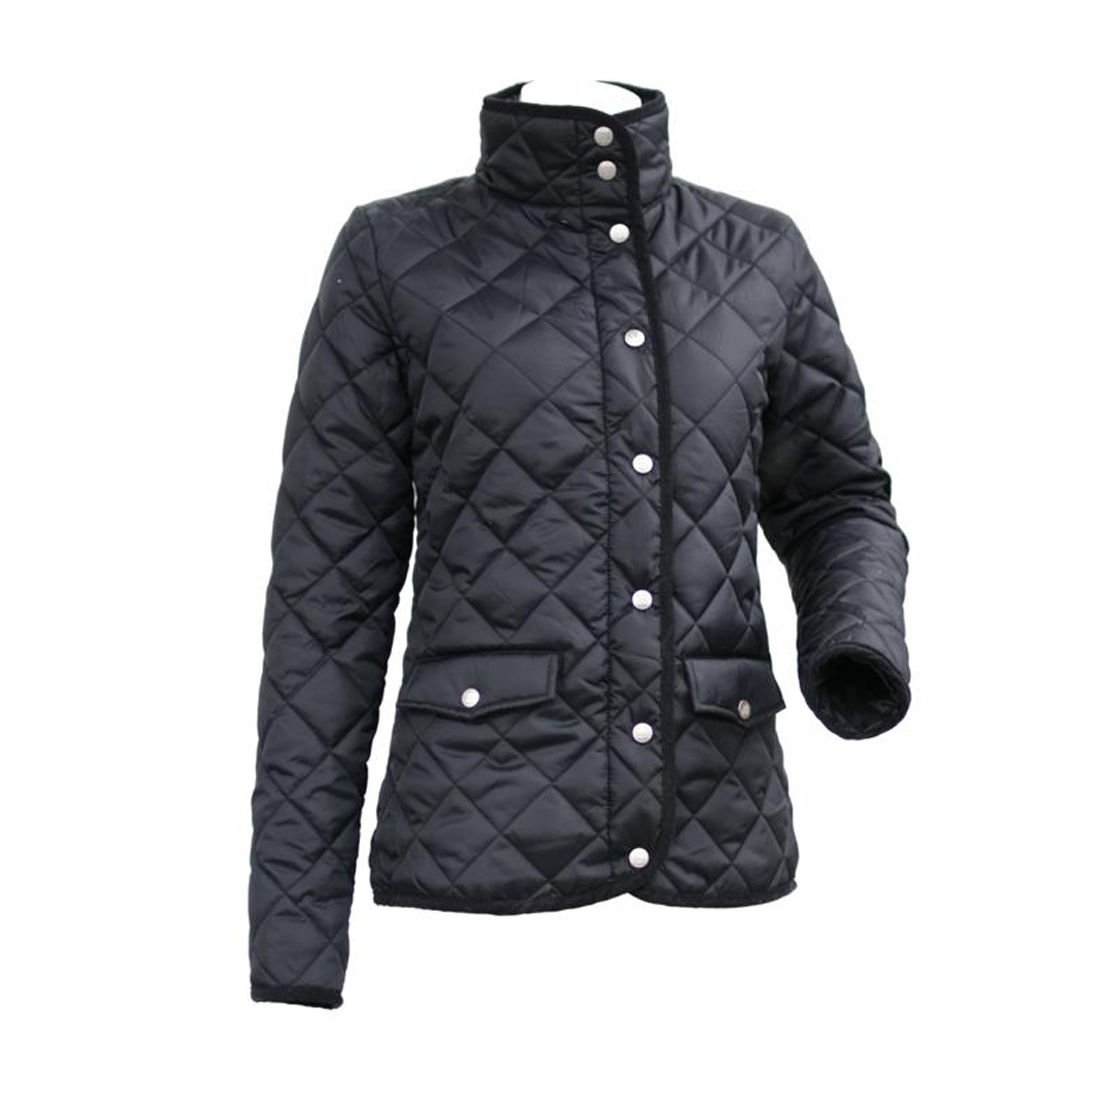 Hamilton Classic Quilted Jacket